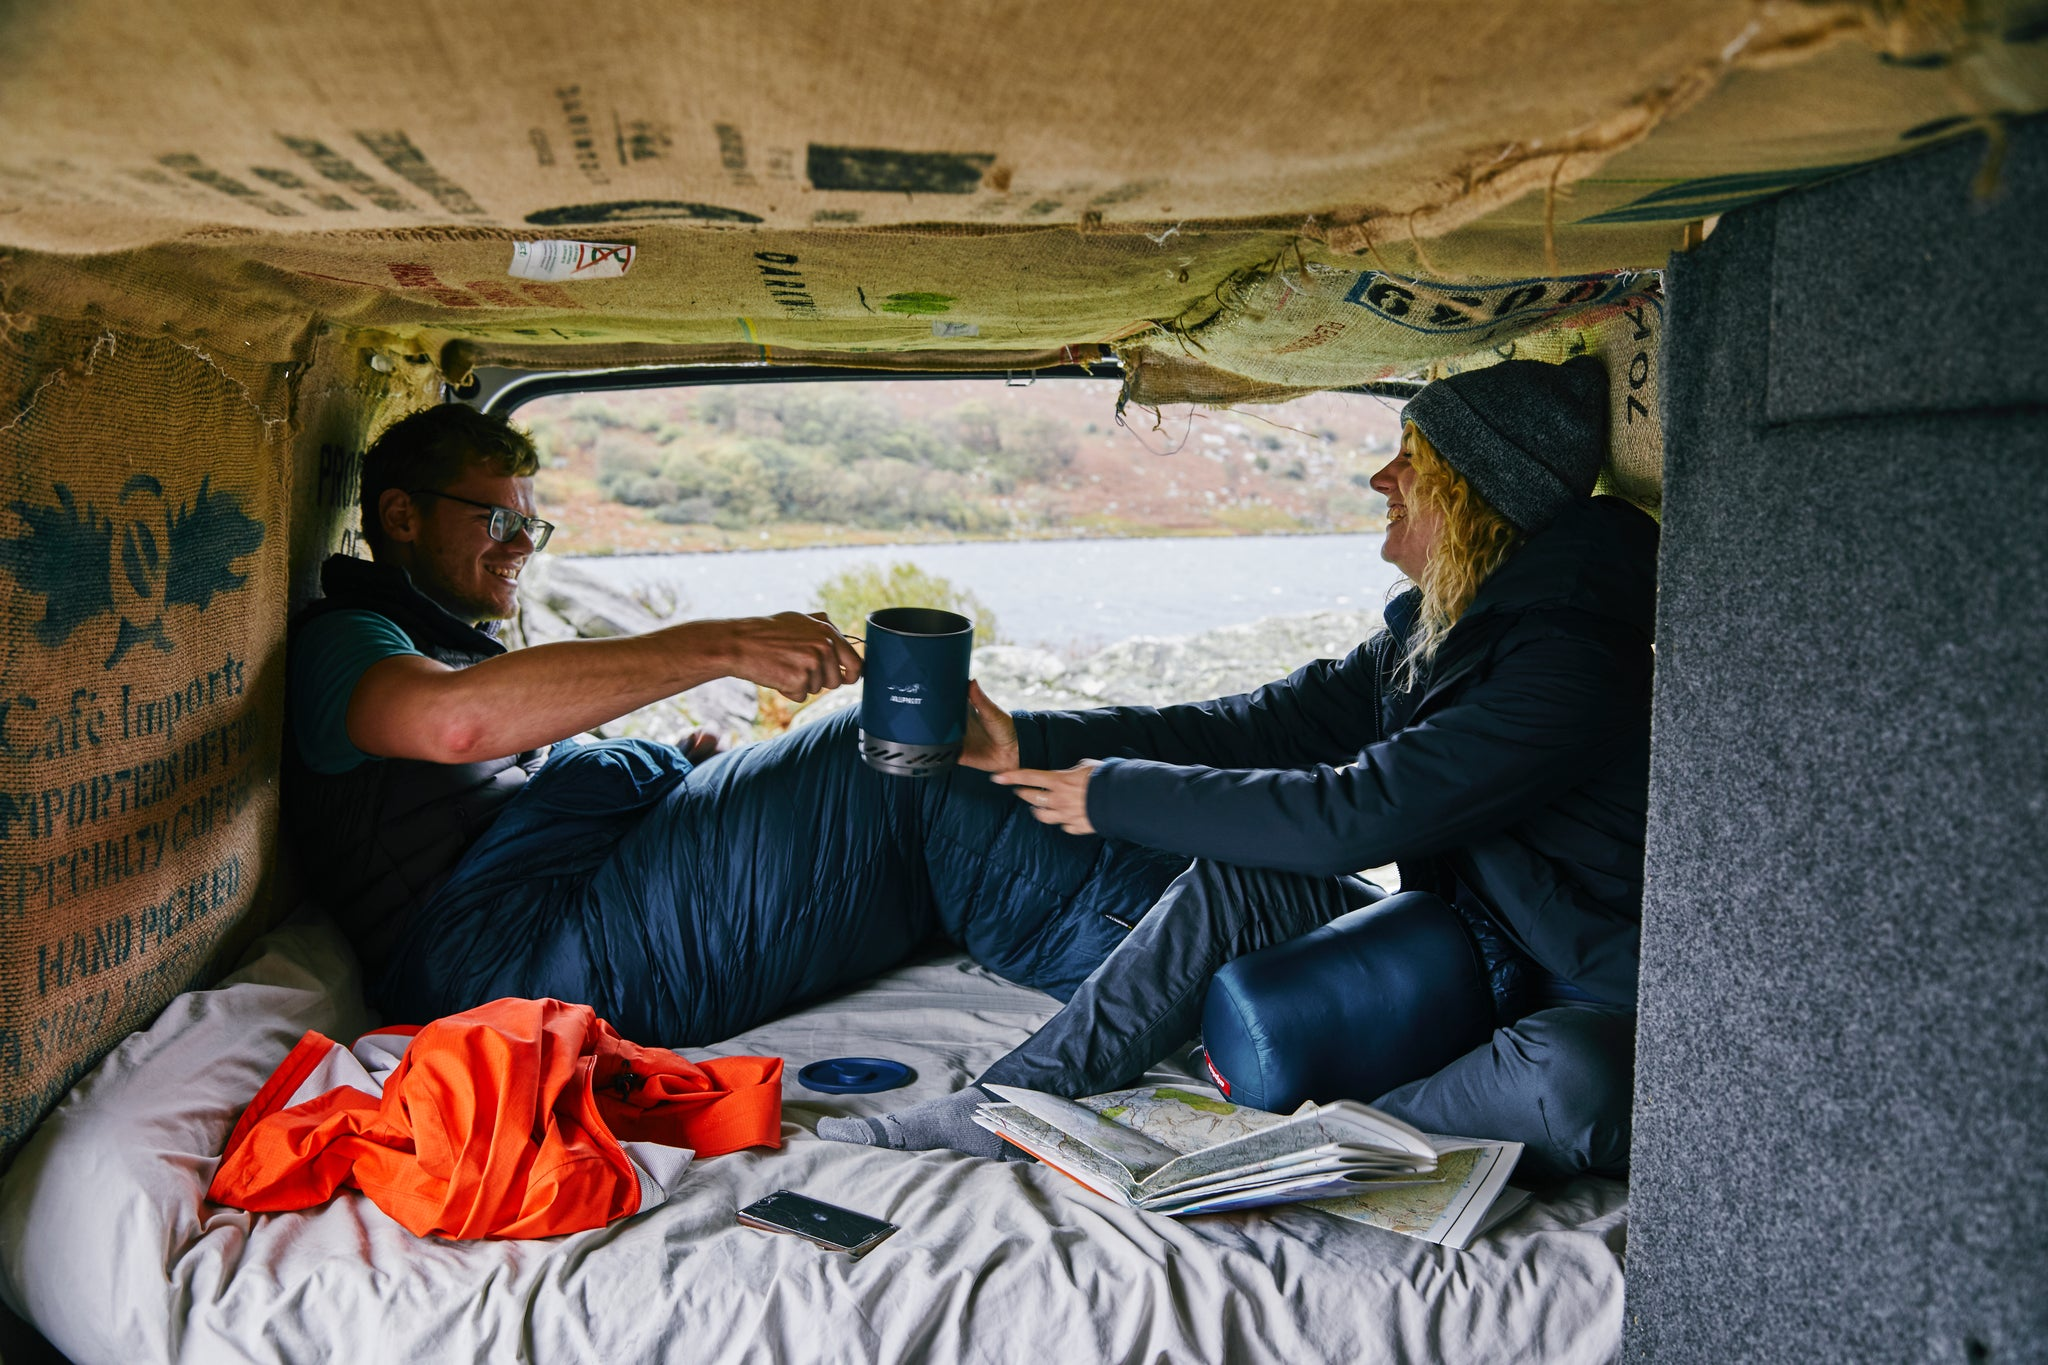 Two people sitting in sleeping bags in a van